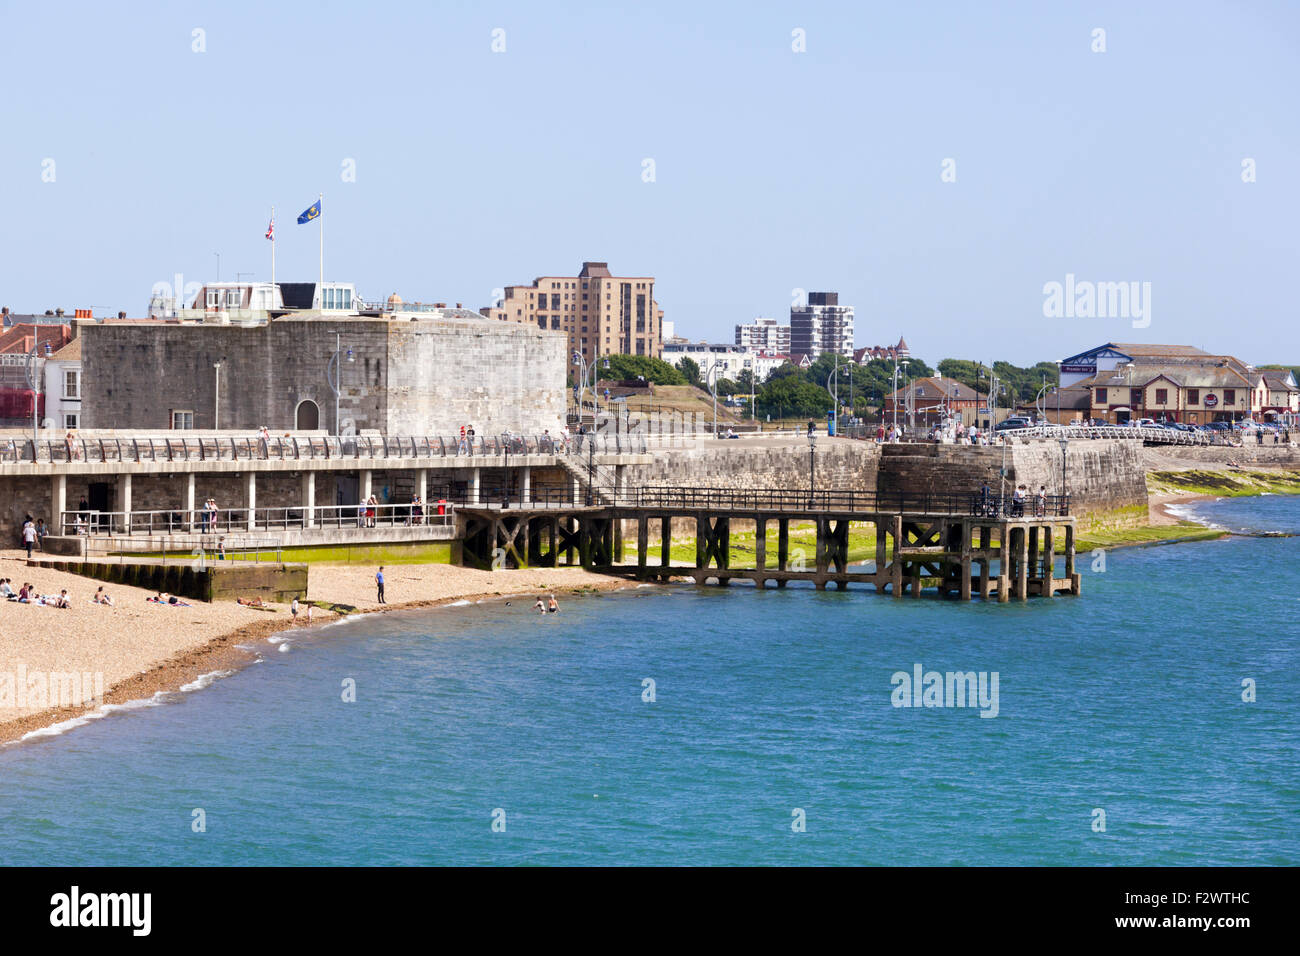 The Square Tower at Southsea, Hampshire UK - Built in 1494 as part of the defences for Portsmouth - Stock Image